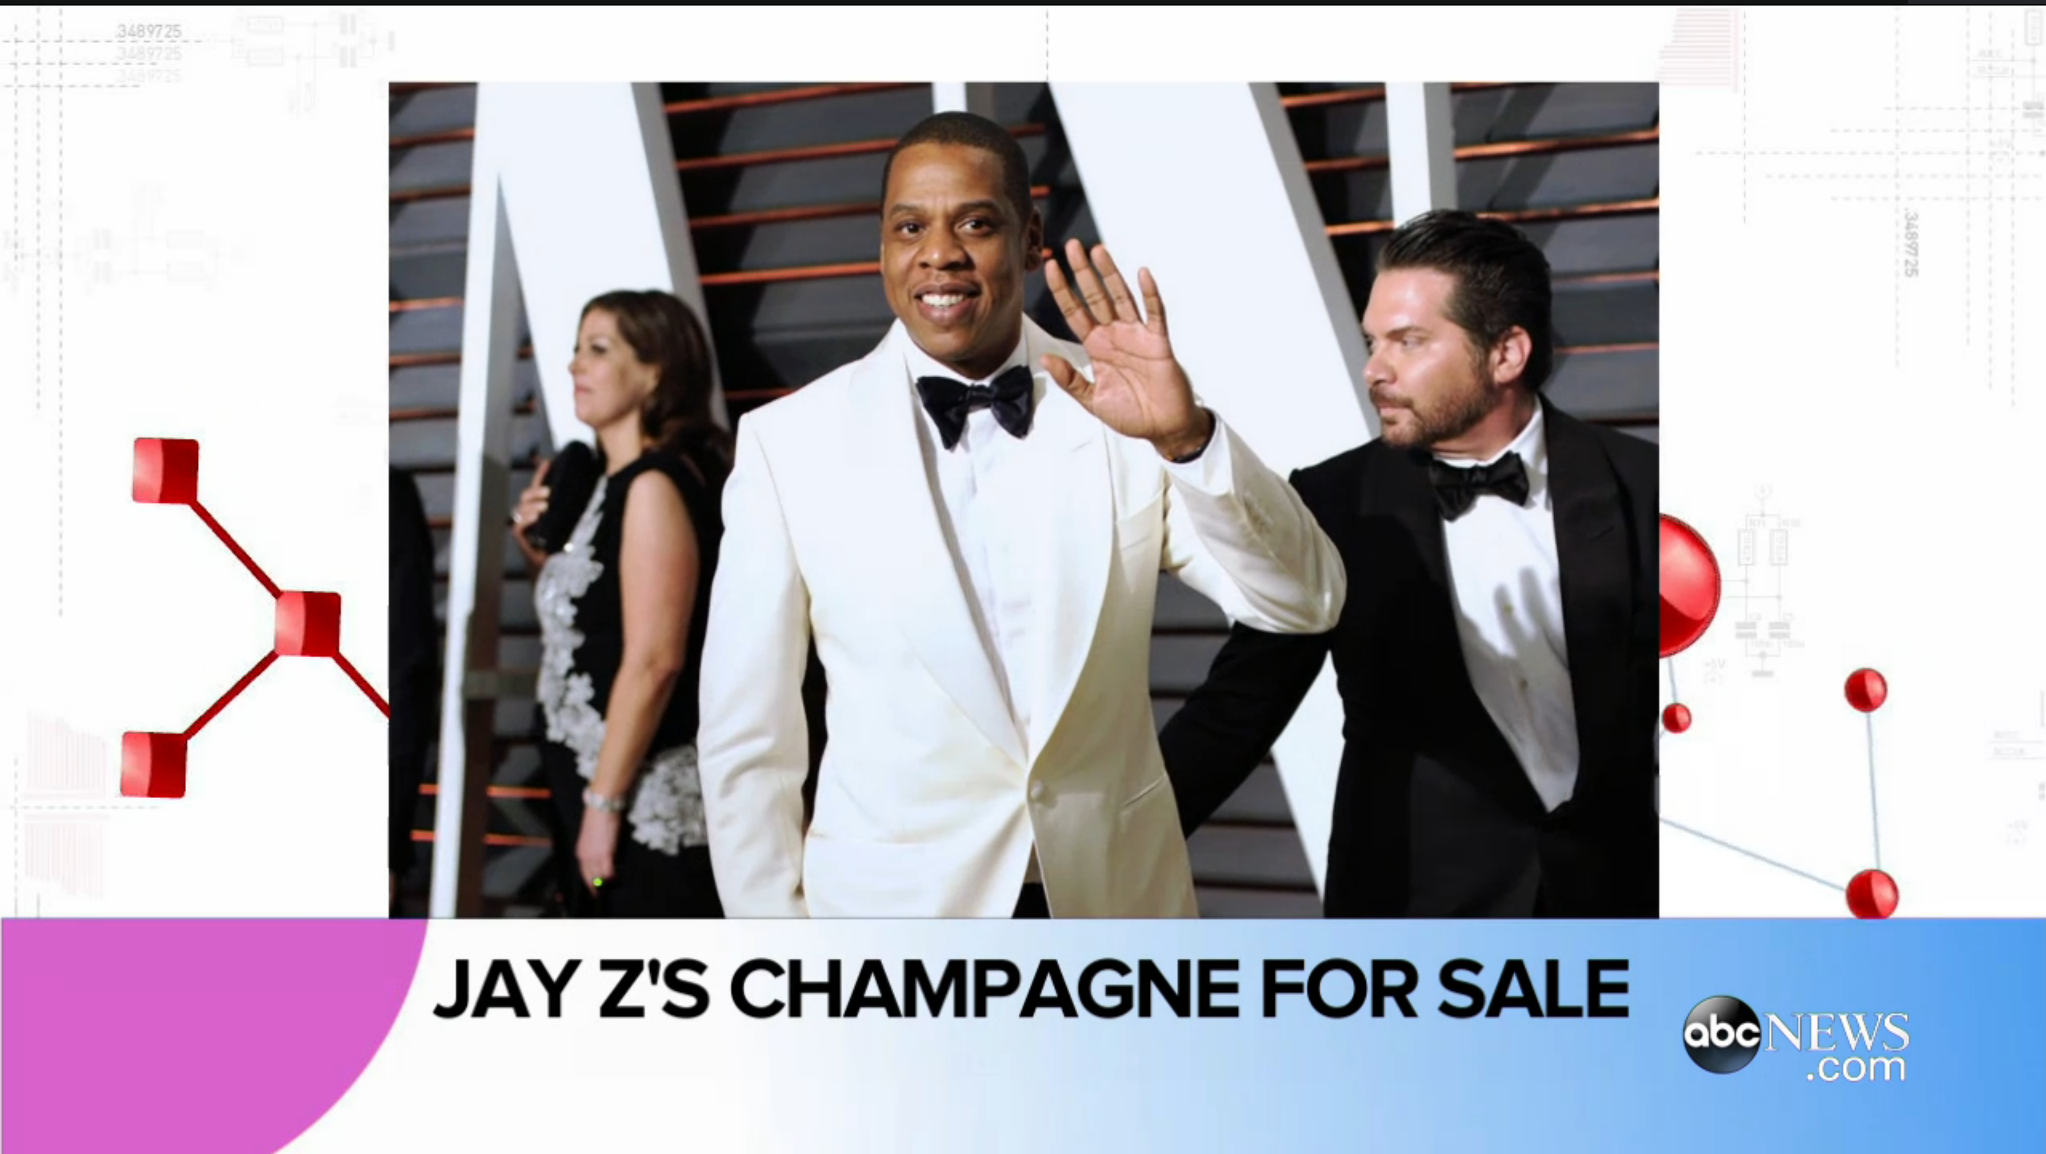 Pop pod about JAY Z's new champagne line